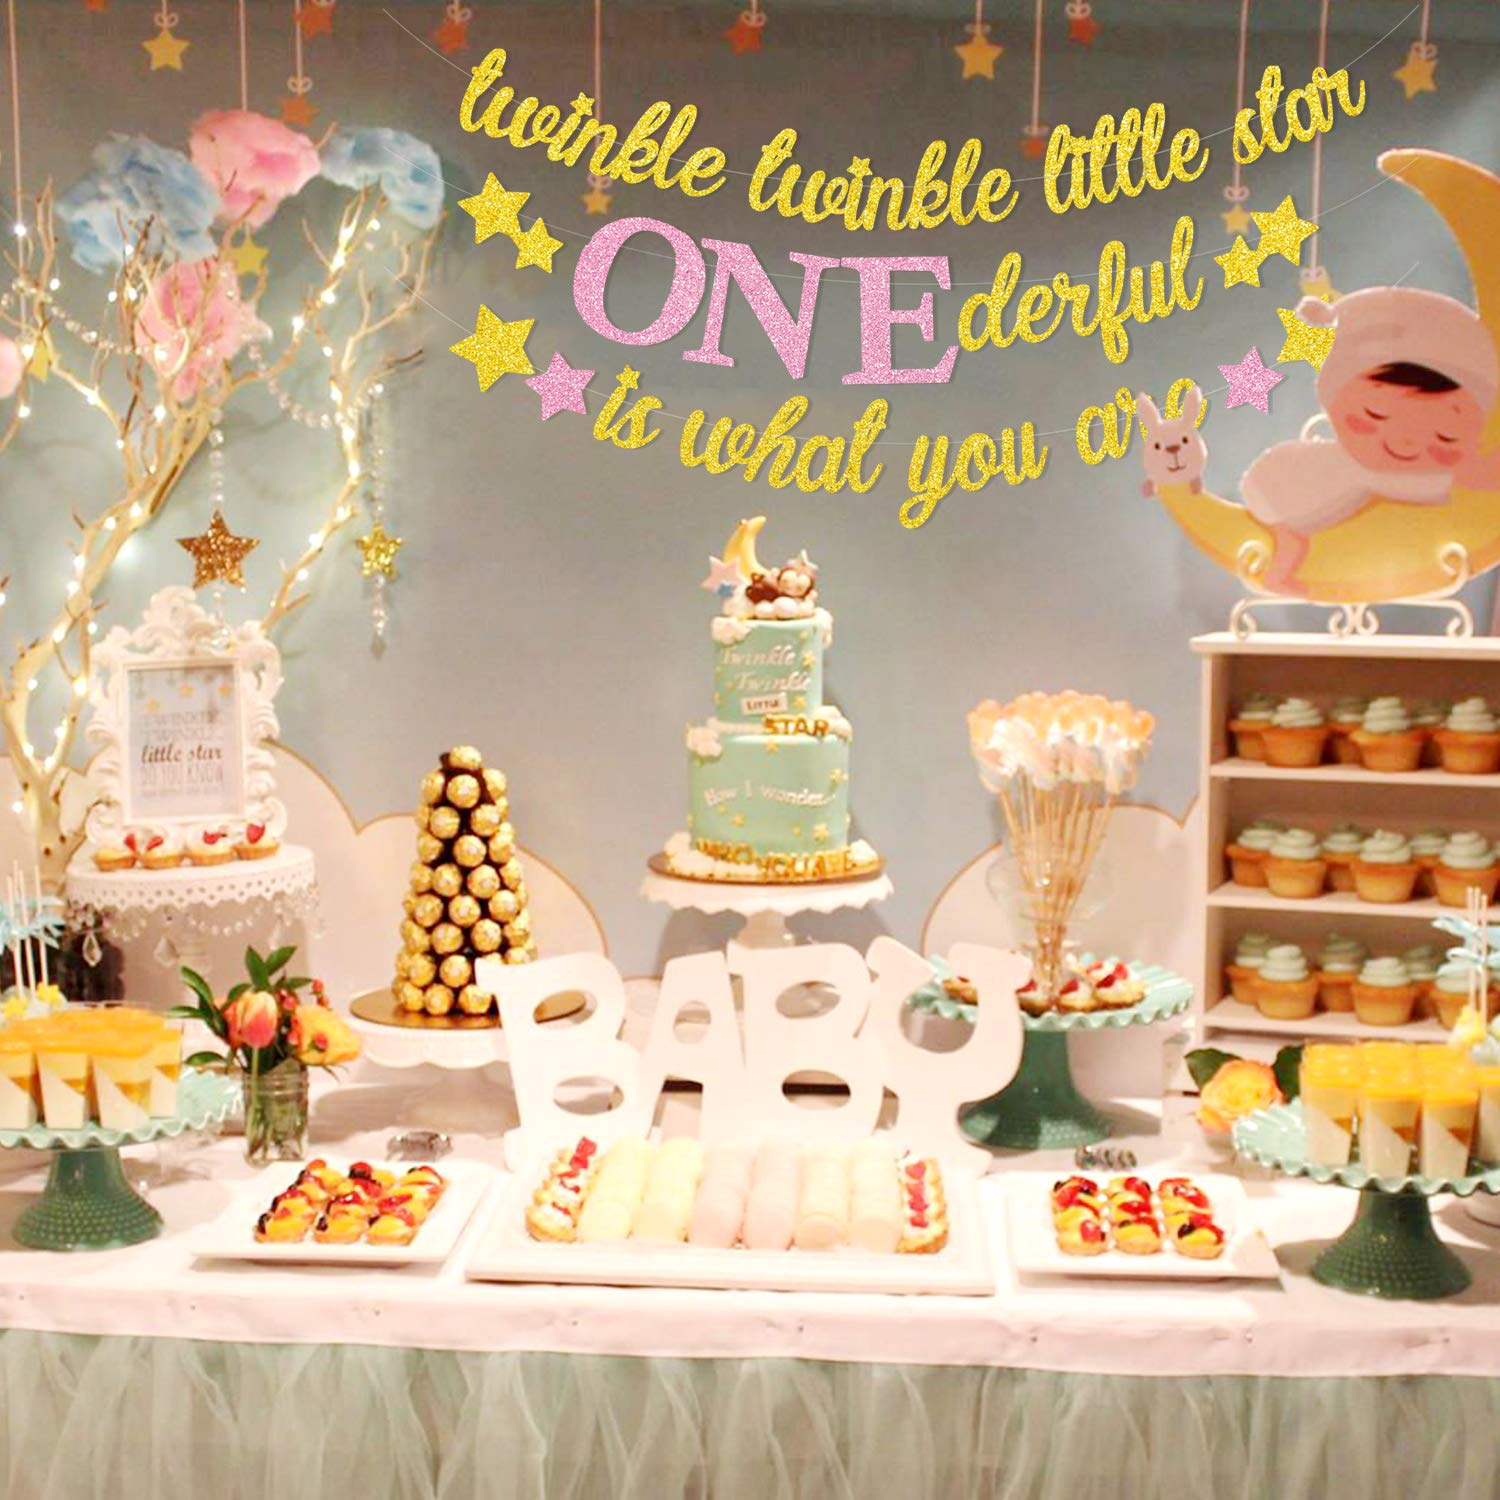 1st Birthday Party Themes.Yaaaaasss Twinkle Twinkle Little Star Banner Girl 1st Birthday Party Decor